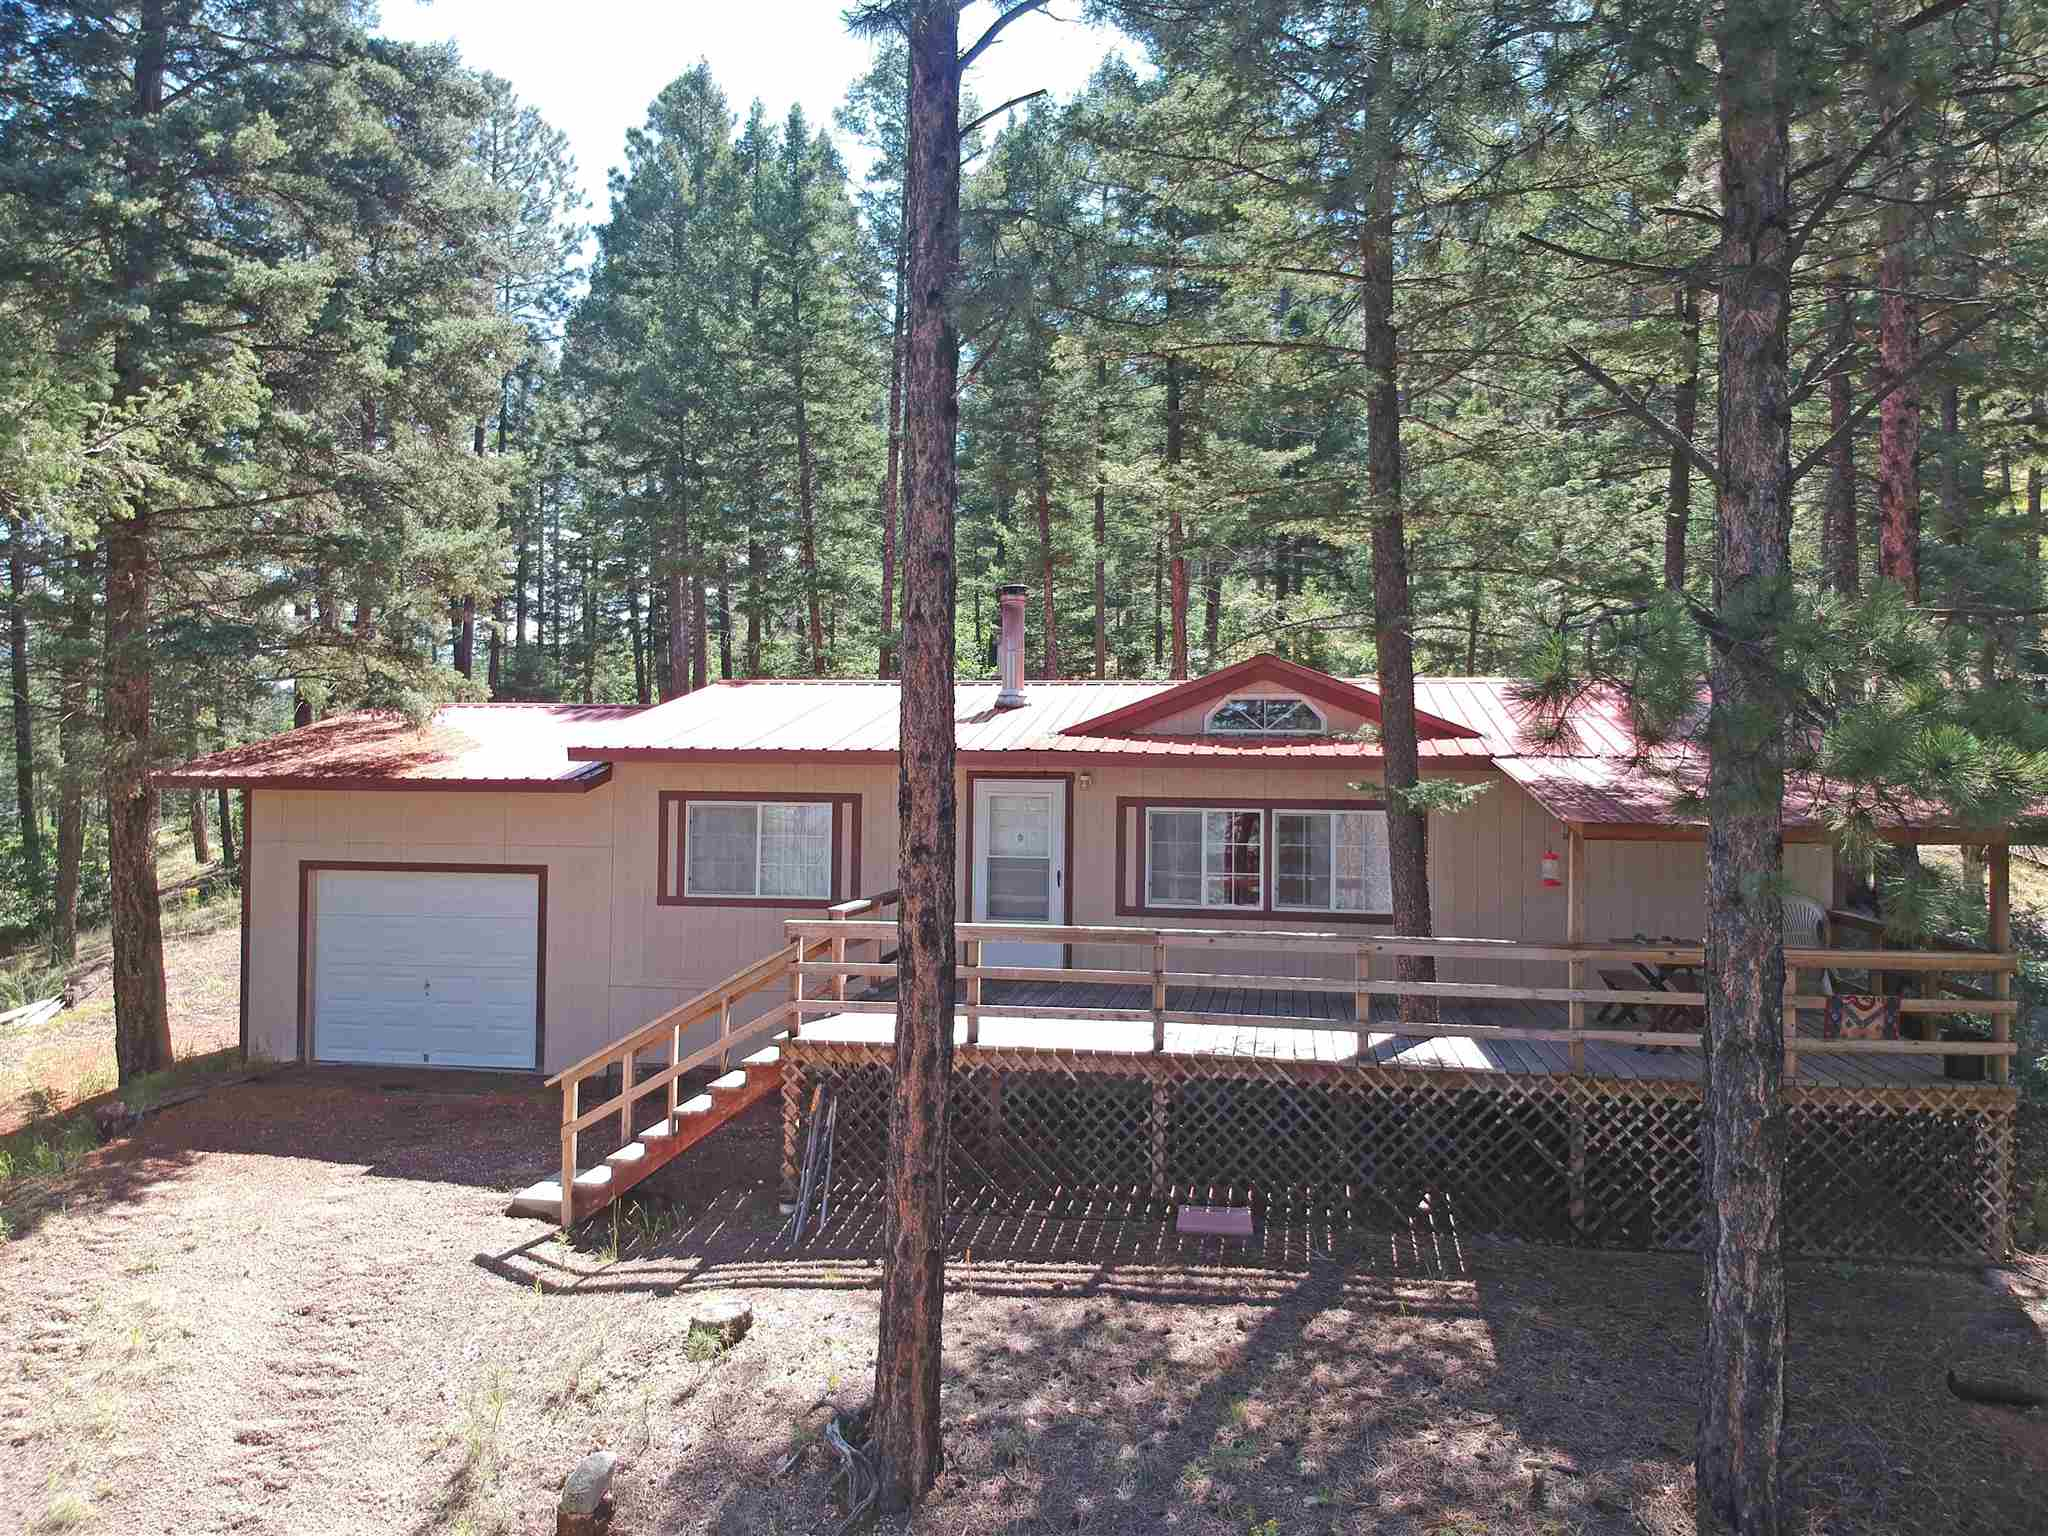 Home away from home or home for good; you found the one! You will love the peace and quiet and beautiful views. Perfect hideaway for outdoor lovers, nature lovers, peace and quiet lovers! Unbelievable view and privacy; mountains, wildlife, hikes, Jemez Falls, winter fun, summer fun, relaxation at it's very best and right in your back yard. Very well maintained manufactured home with a gorgeous deck which has panoramic views spanning down the valley to Redondo Peak. Driveway has two entrances. Single car garage. Furnishings stay with acceptable offer. Very easy 30 minute commute into Los Alamos. Will consider exchange for Albuquerque area home or Jemez Springs area land.